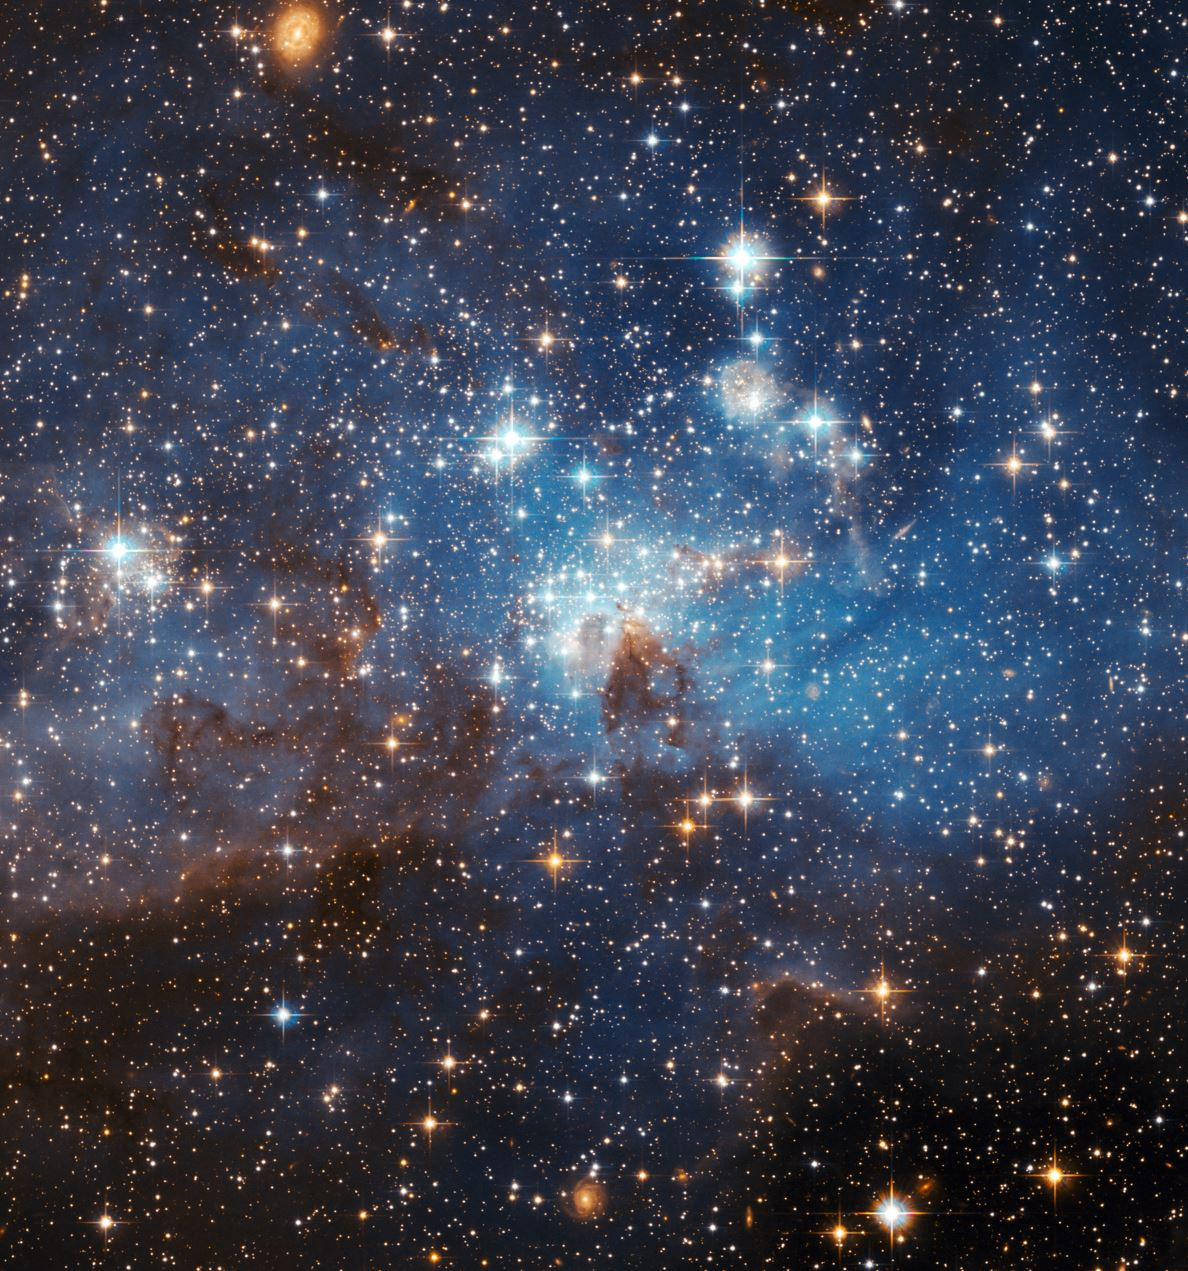 What secrets will space reveal? - Image Credit:  NASA, ESA